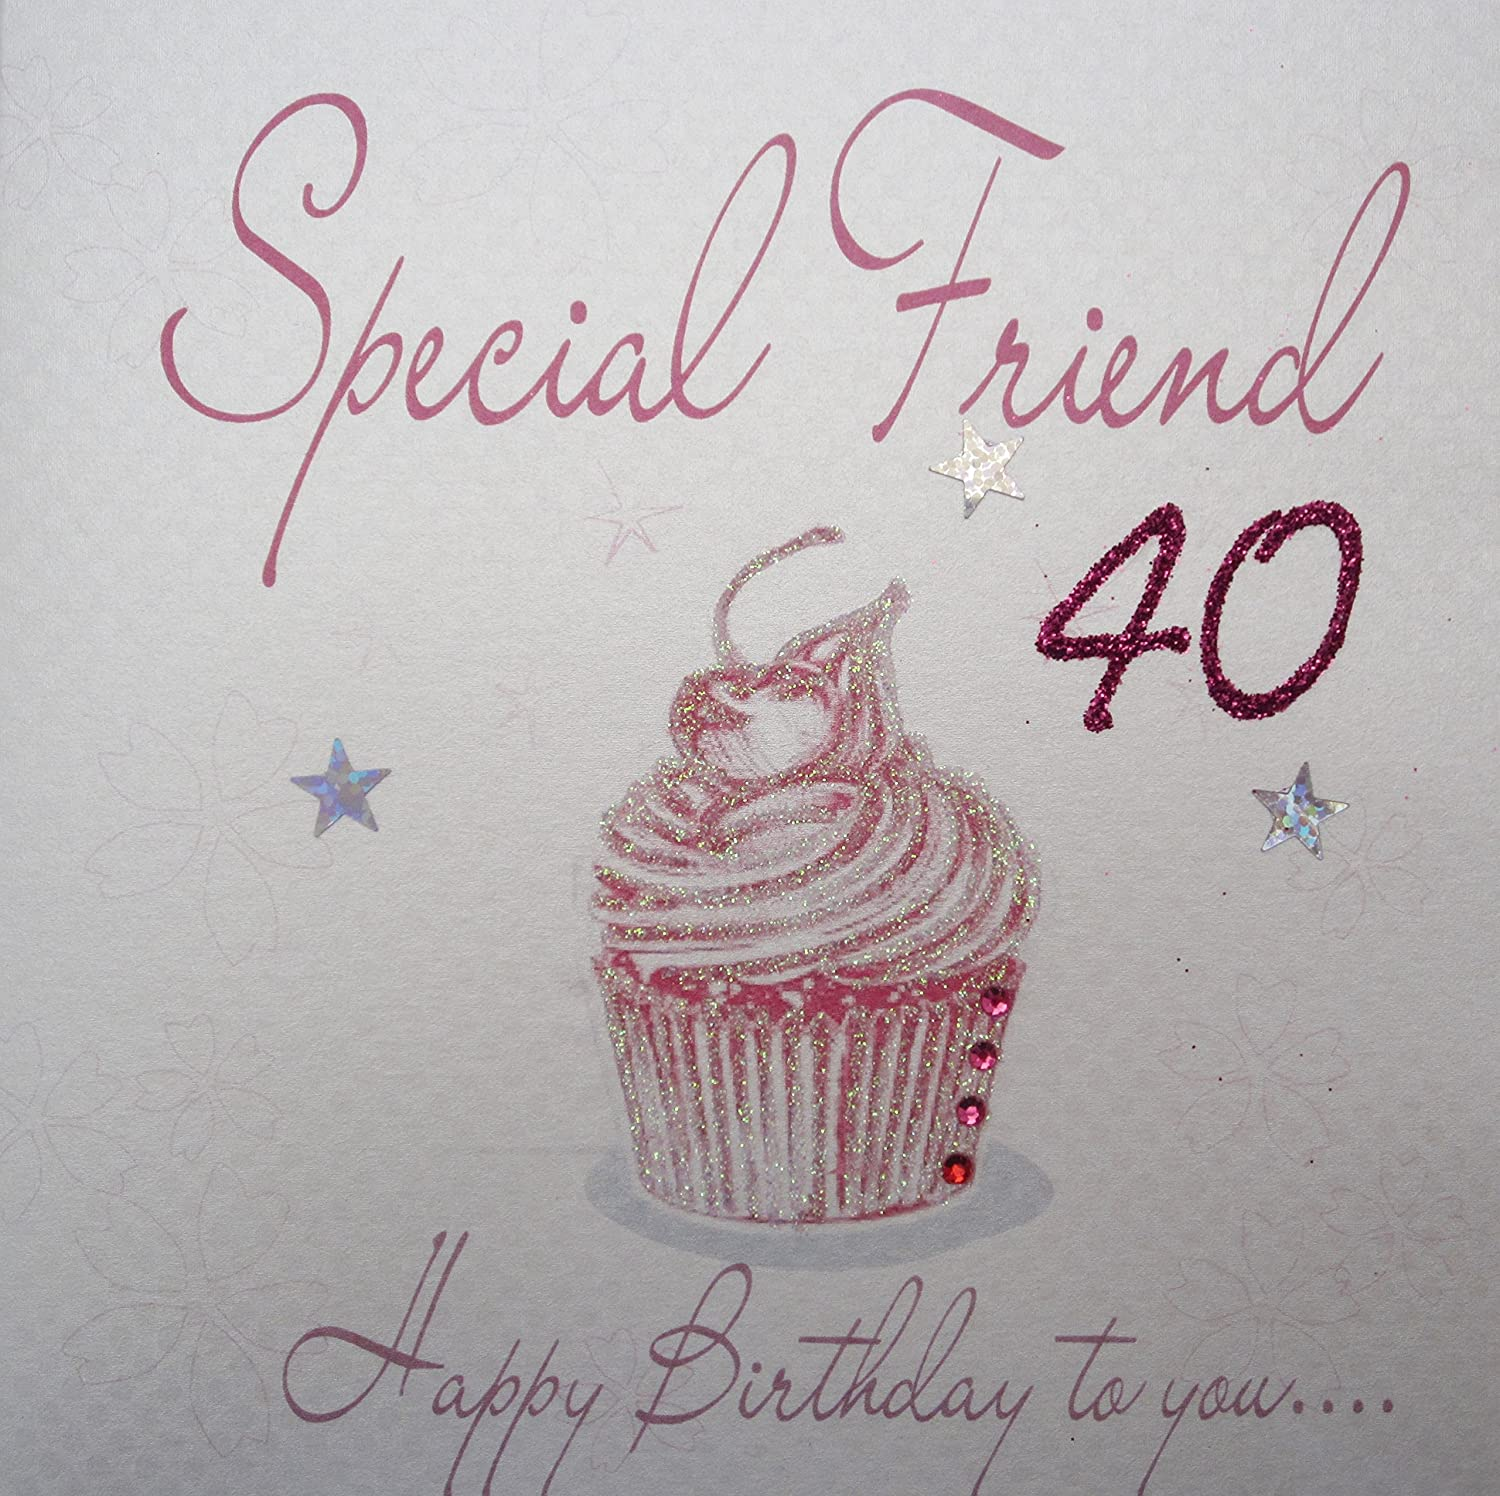 White cotton cards wb202 40 pink cupcake special friend 40 happy white cotton cards wb202 40 pink cupcake special friend 40 happy birthday to you handmade 40th birthday card white amazon kitchen home bookmarktalkfo Choice Image